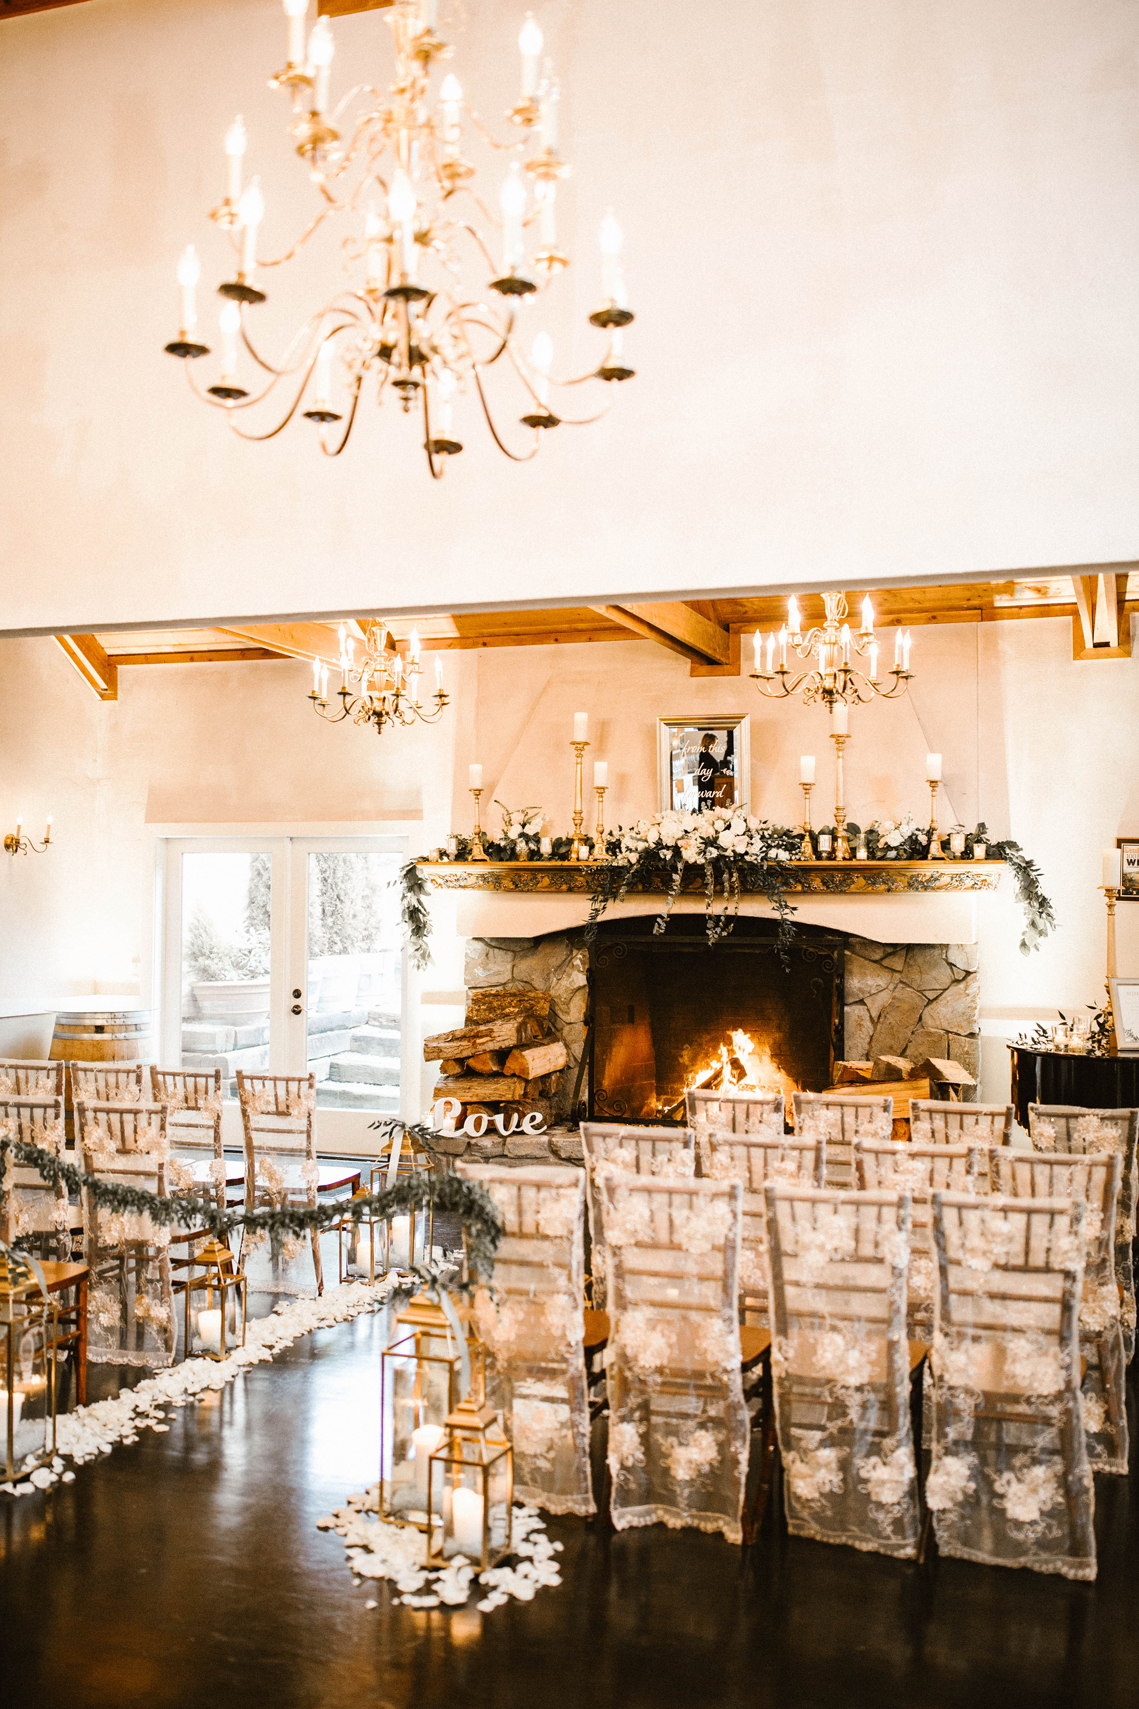 DeLille+Cellars_The+Chateau_Woodinville_2017_Weddings+In+Woodinville99.jpg